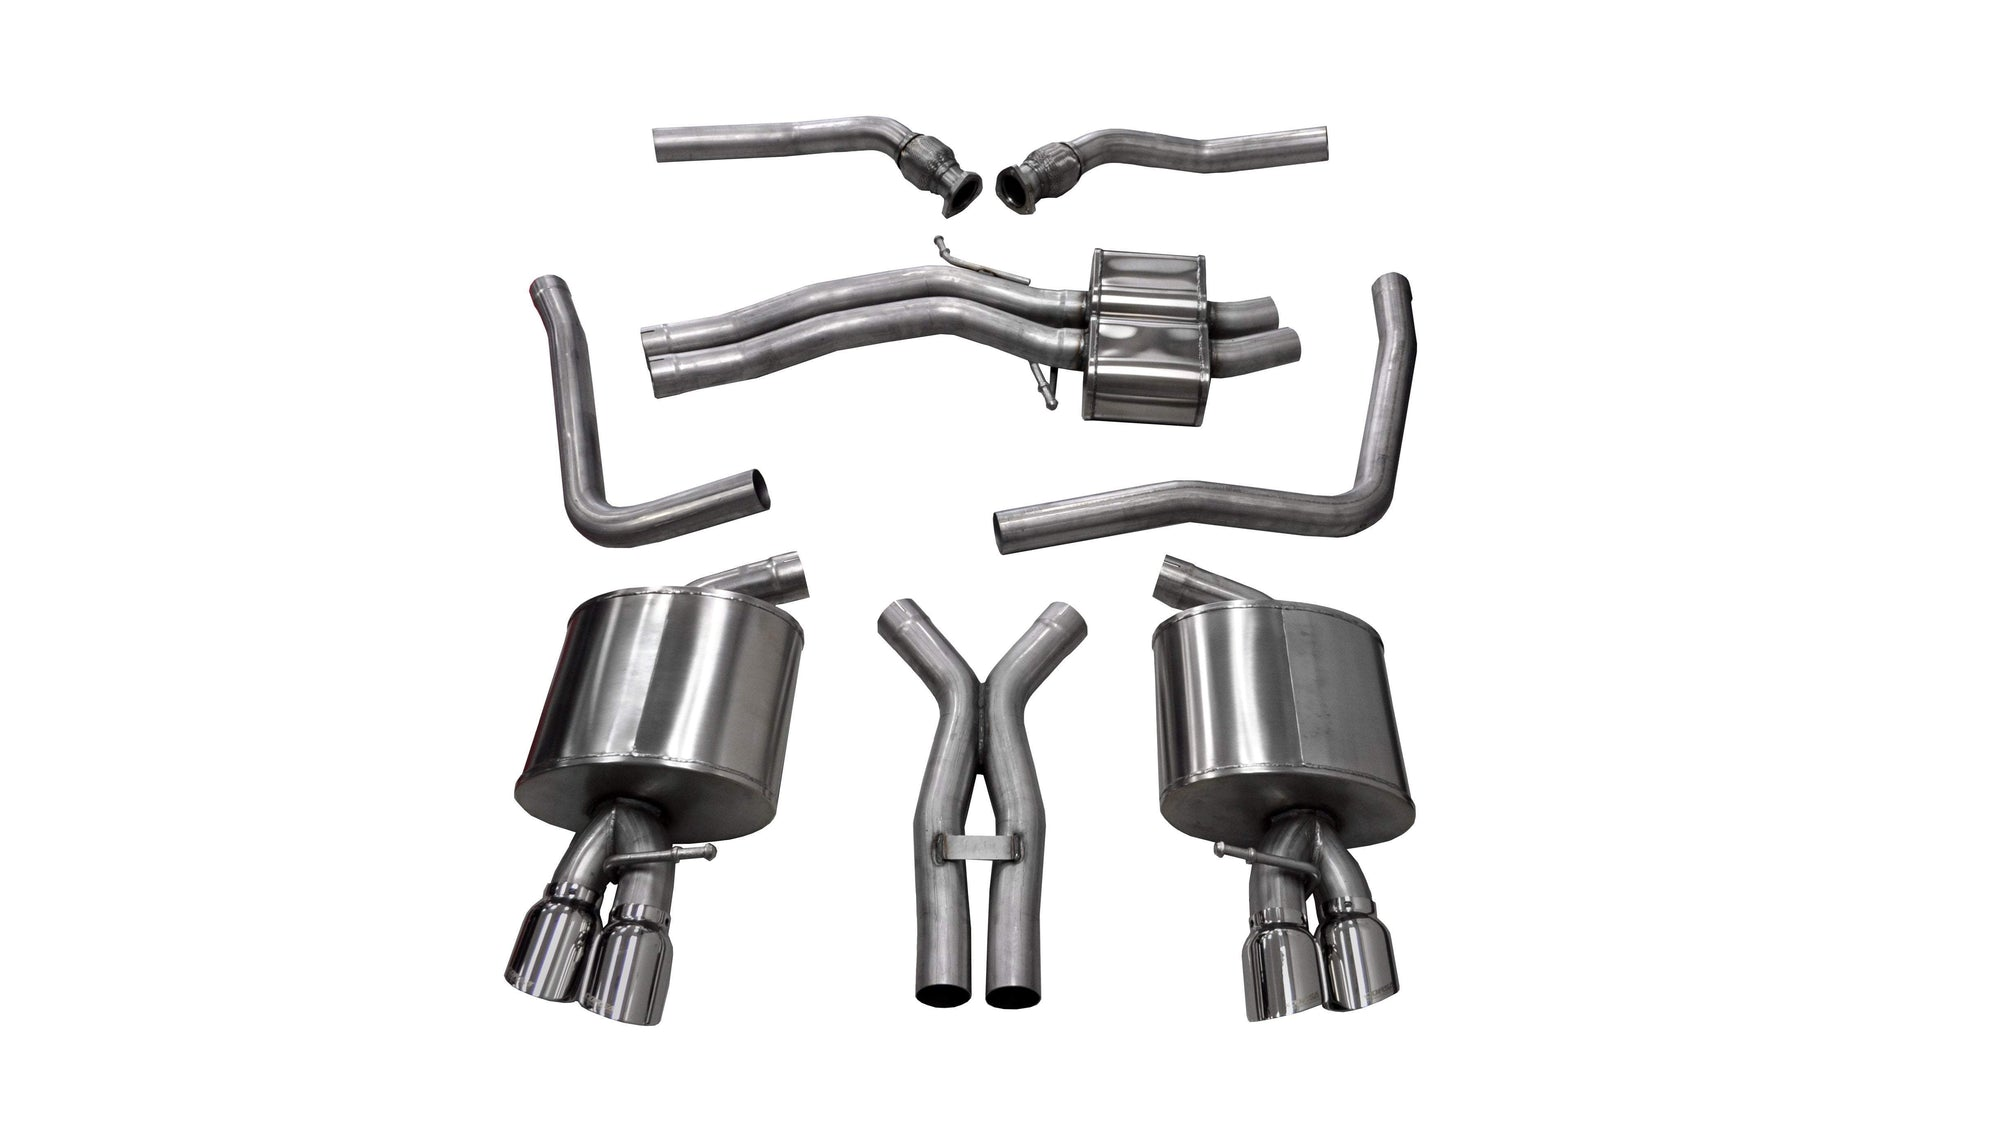 "CORSA PERFORMANCE Cat-Back Exhaust Polished / Sport / Dual Rear - Twin 3.5in 2008-2014 Audi S5 B8, 4.2L V8, 2.5"" Dual Rear Exit Cat-Back with Twin 3.5"" Tips (14544) Sport Sound Level"